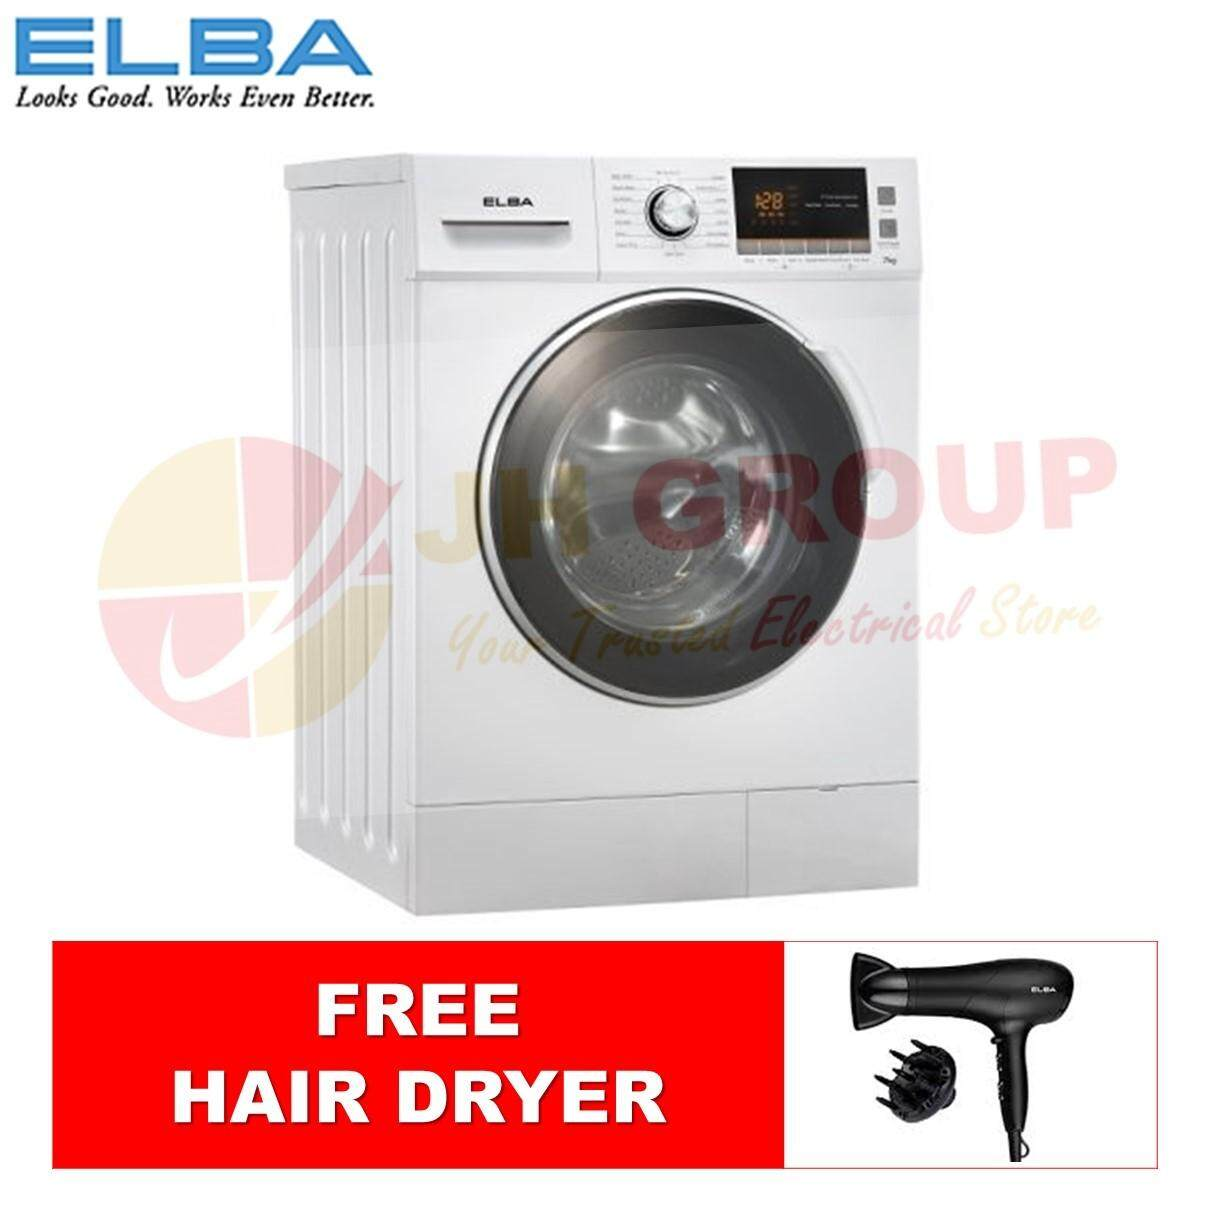 (AUTHORISED DEALER) ELBA EWF-E7152D(WH) FRONT LOADING WASHING MACHINE 7KG *FREE HAIR DRYER